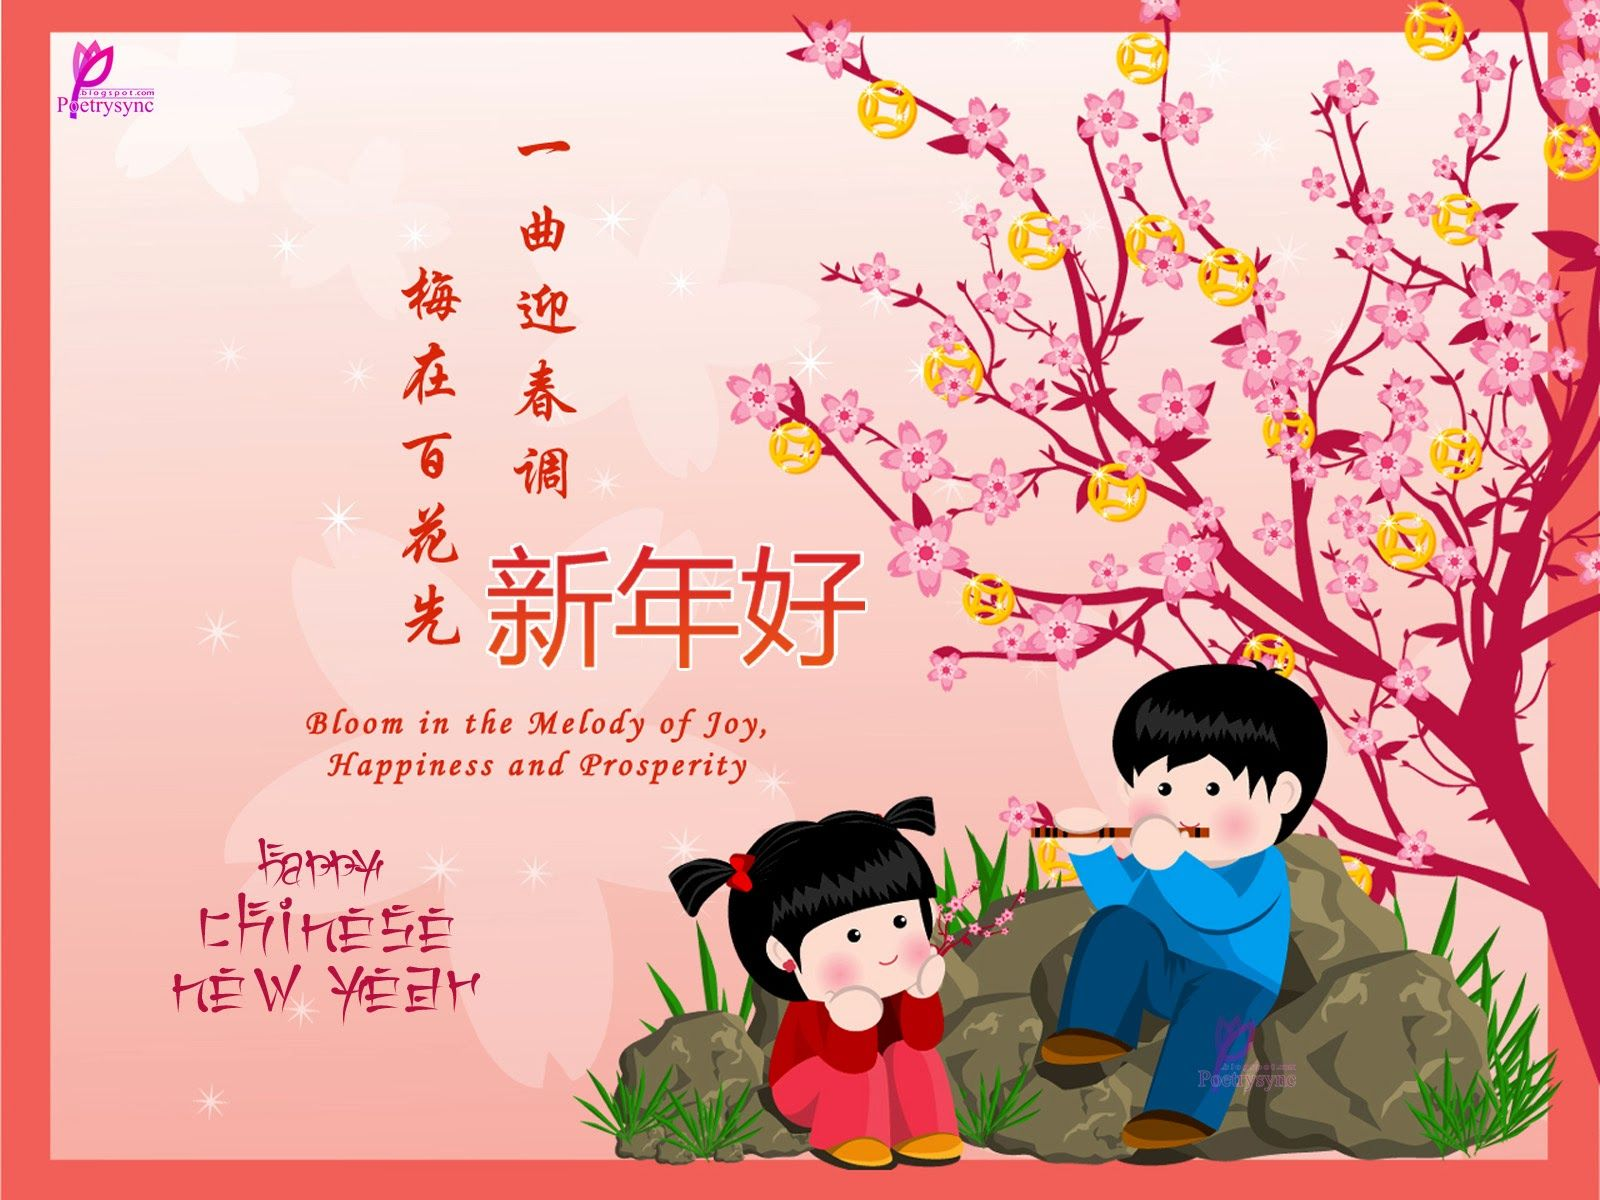 Happy Chinese New Year Wishes Lunar New Year Hd Wallpapers Happy Tet